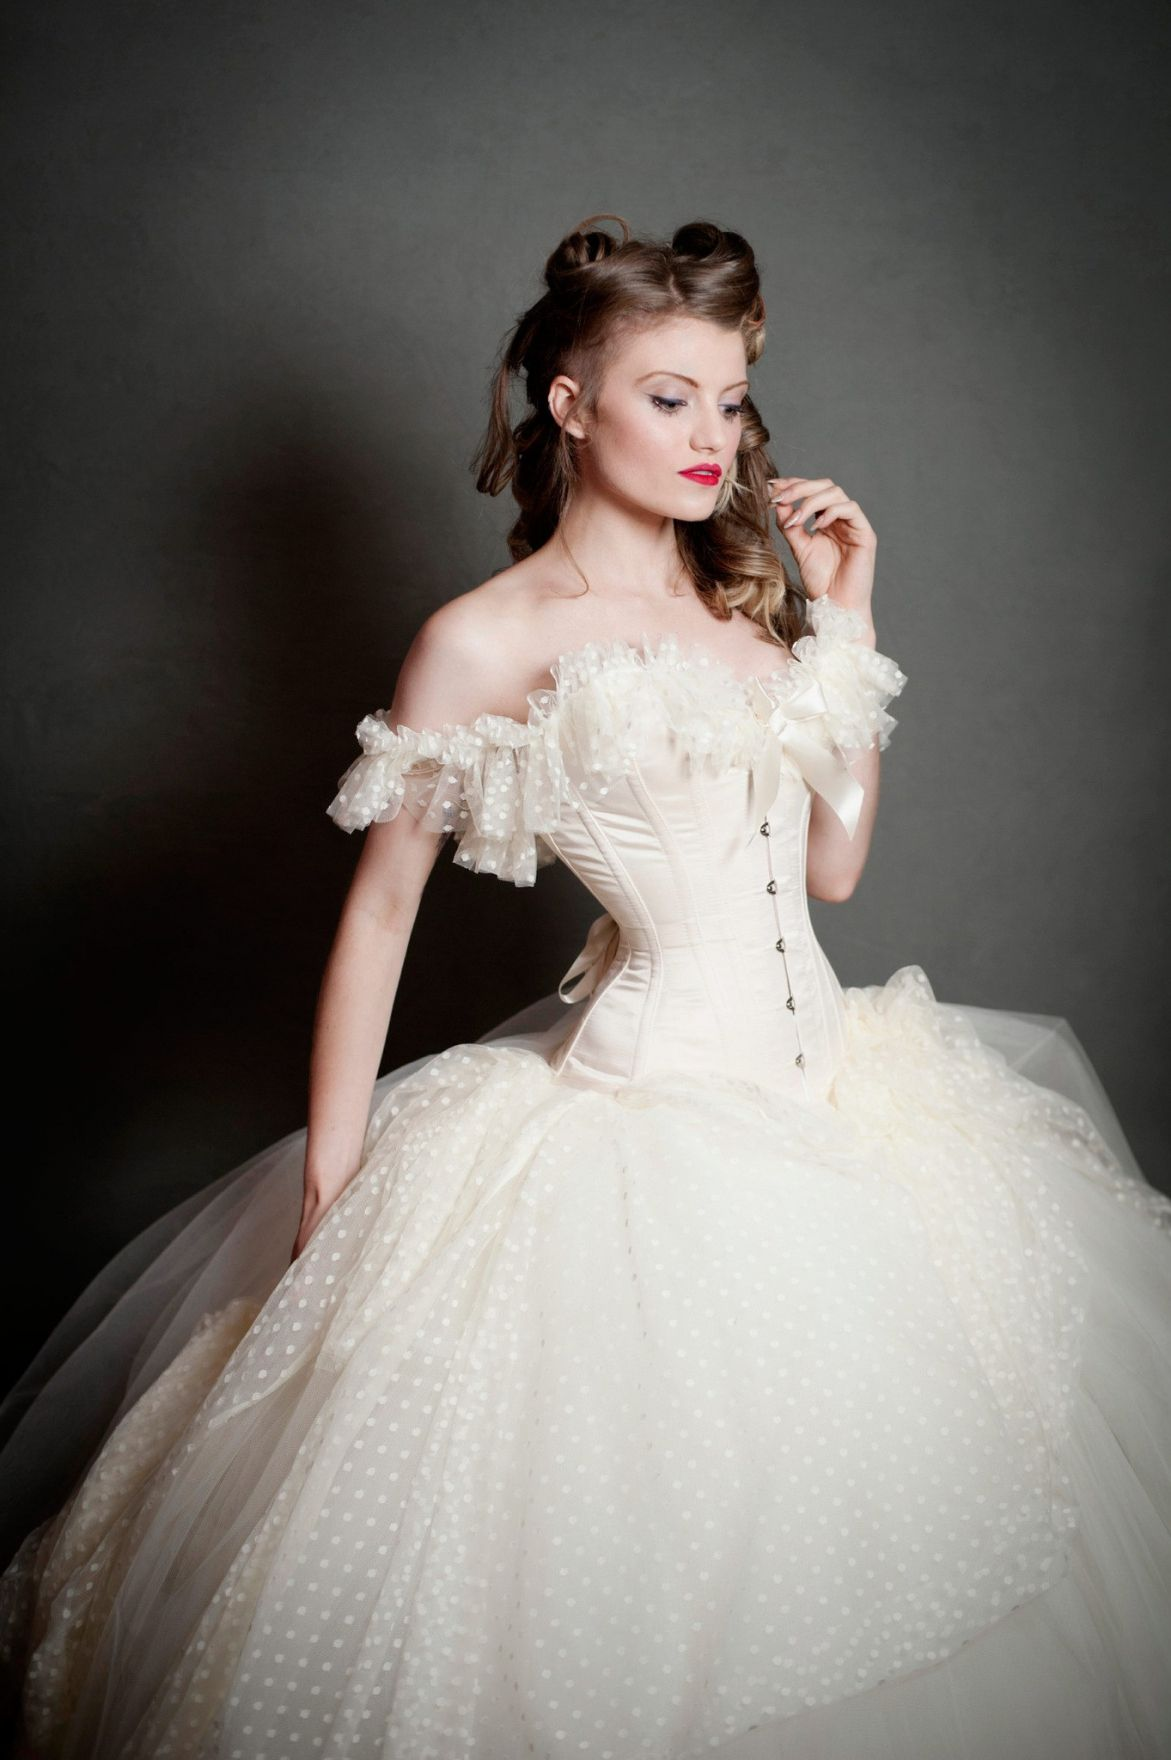 100 Steel Boned Corset Wedding Dress Plus Size Dresses For Guests Check More